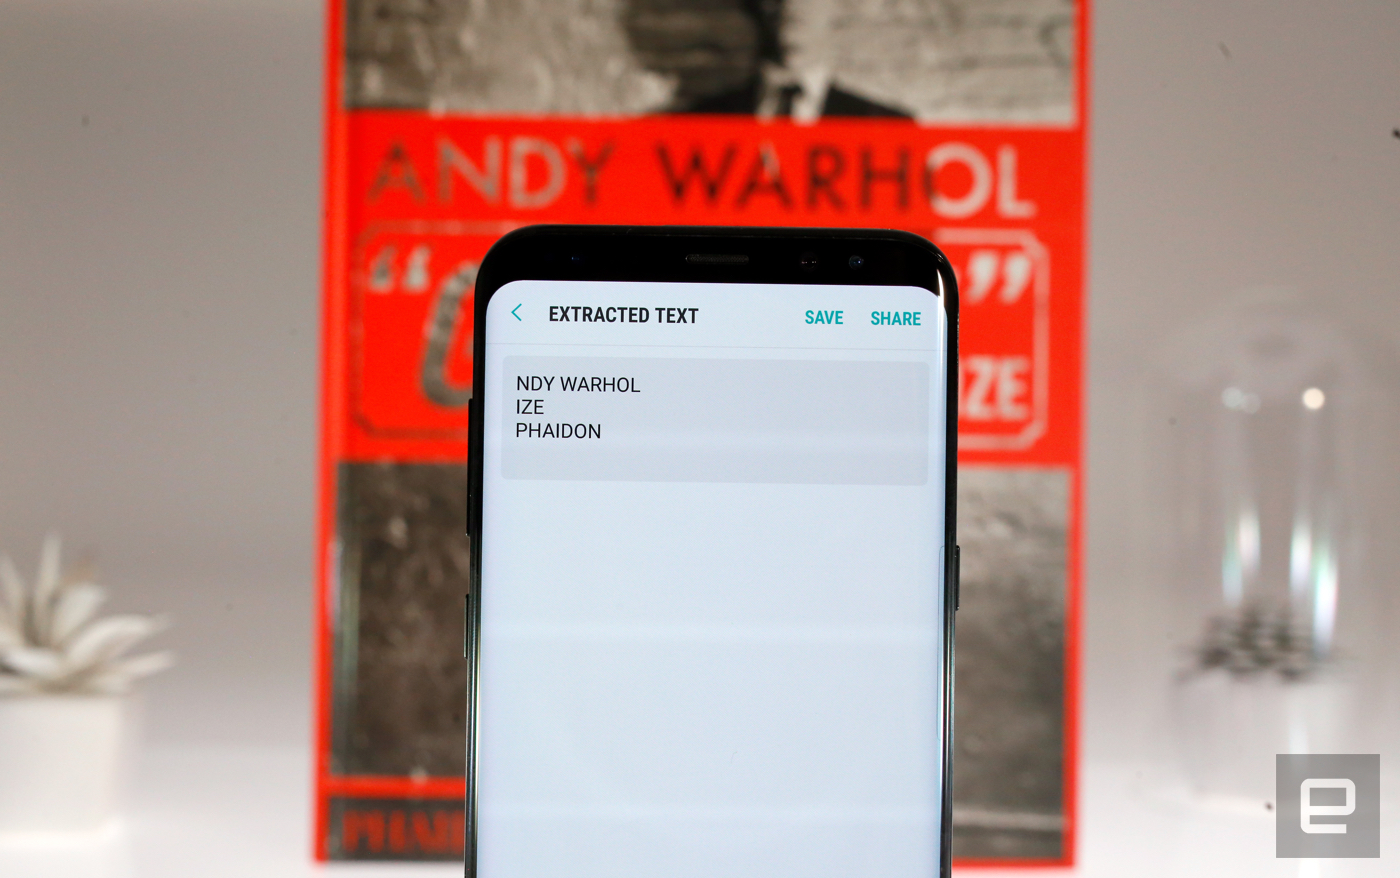 Samsung Galaxy S8 And Plus Review Redemption Is Here Pin Wiring Two 3 Way Motion Detector Switches On Pinterest Its Too Bad The Really Useful Stuff Visual Text Extraction Translation Hit Or Miss Problem With Both That Bixby At